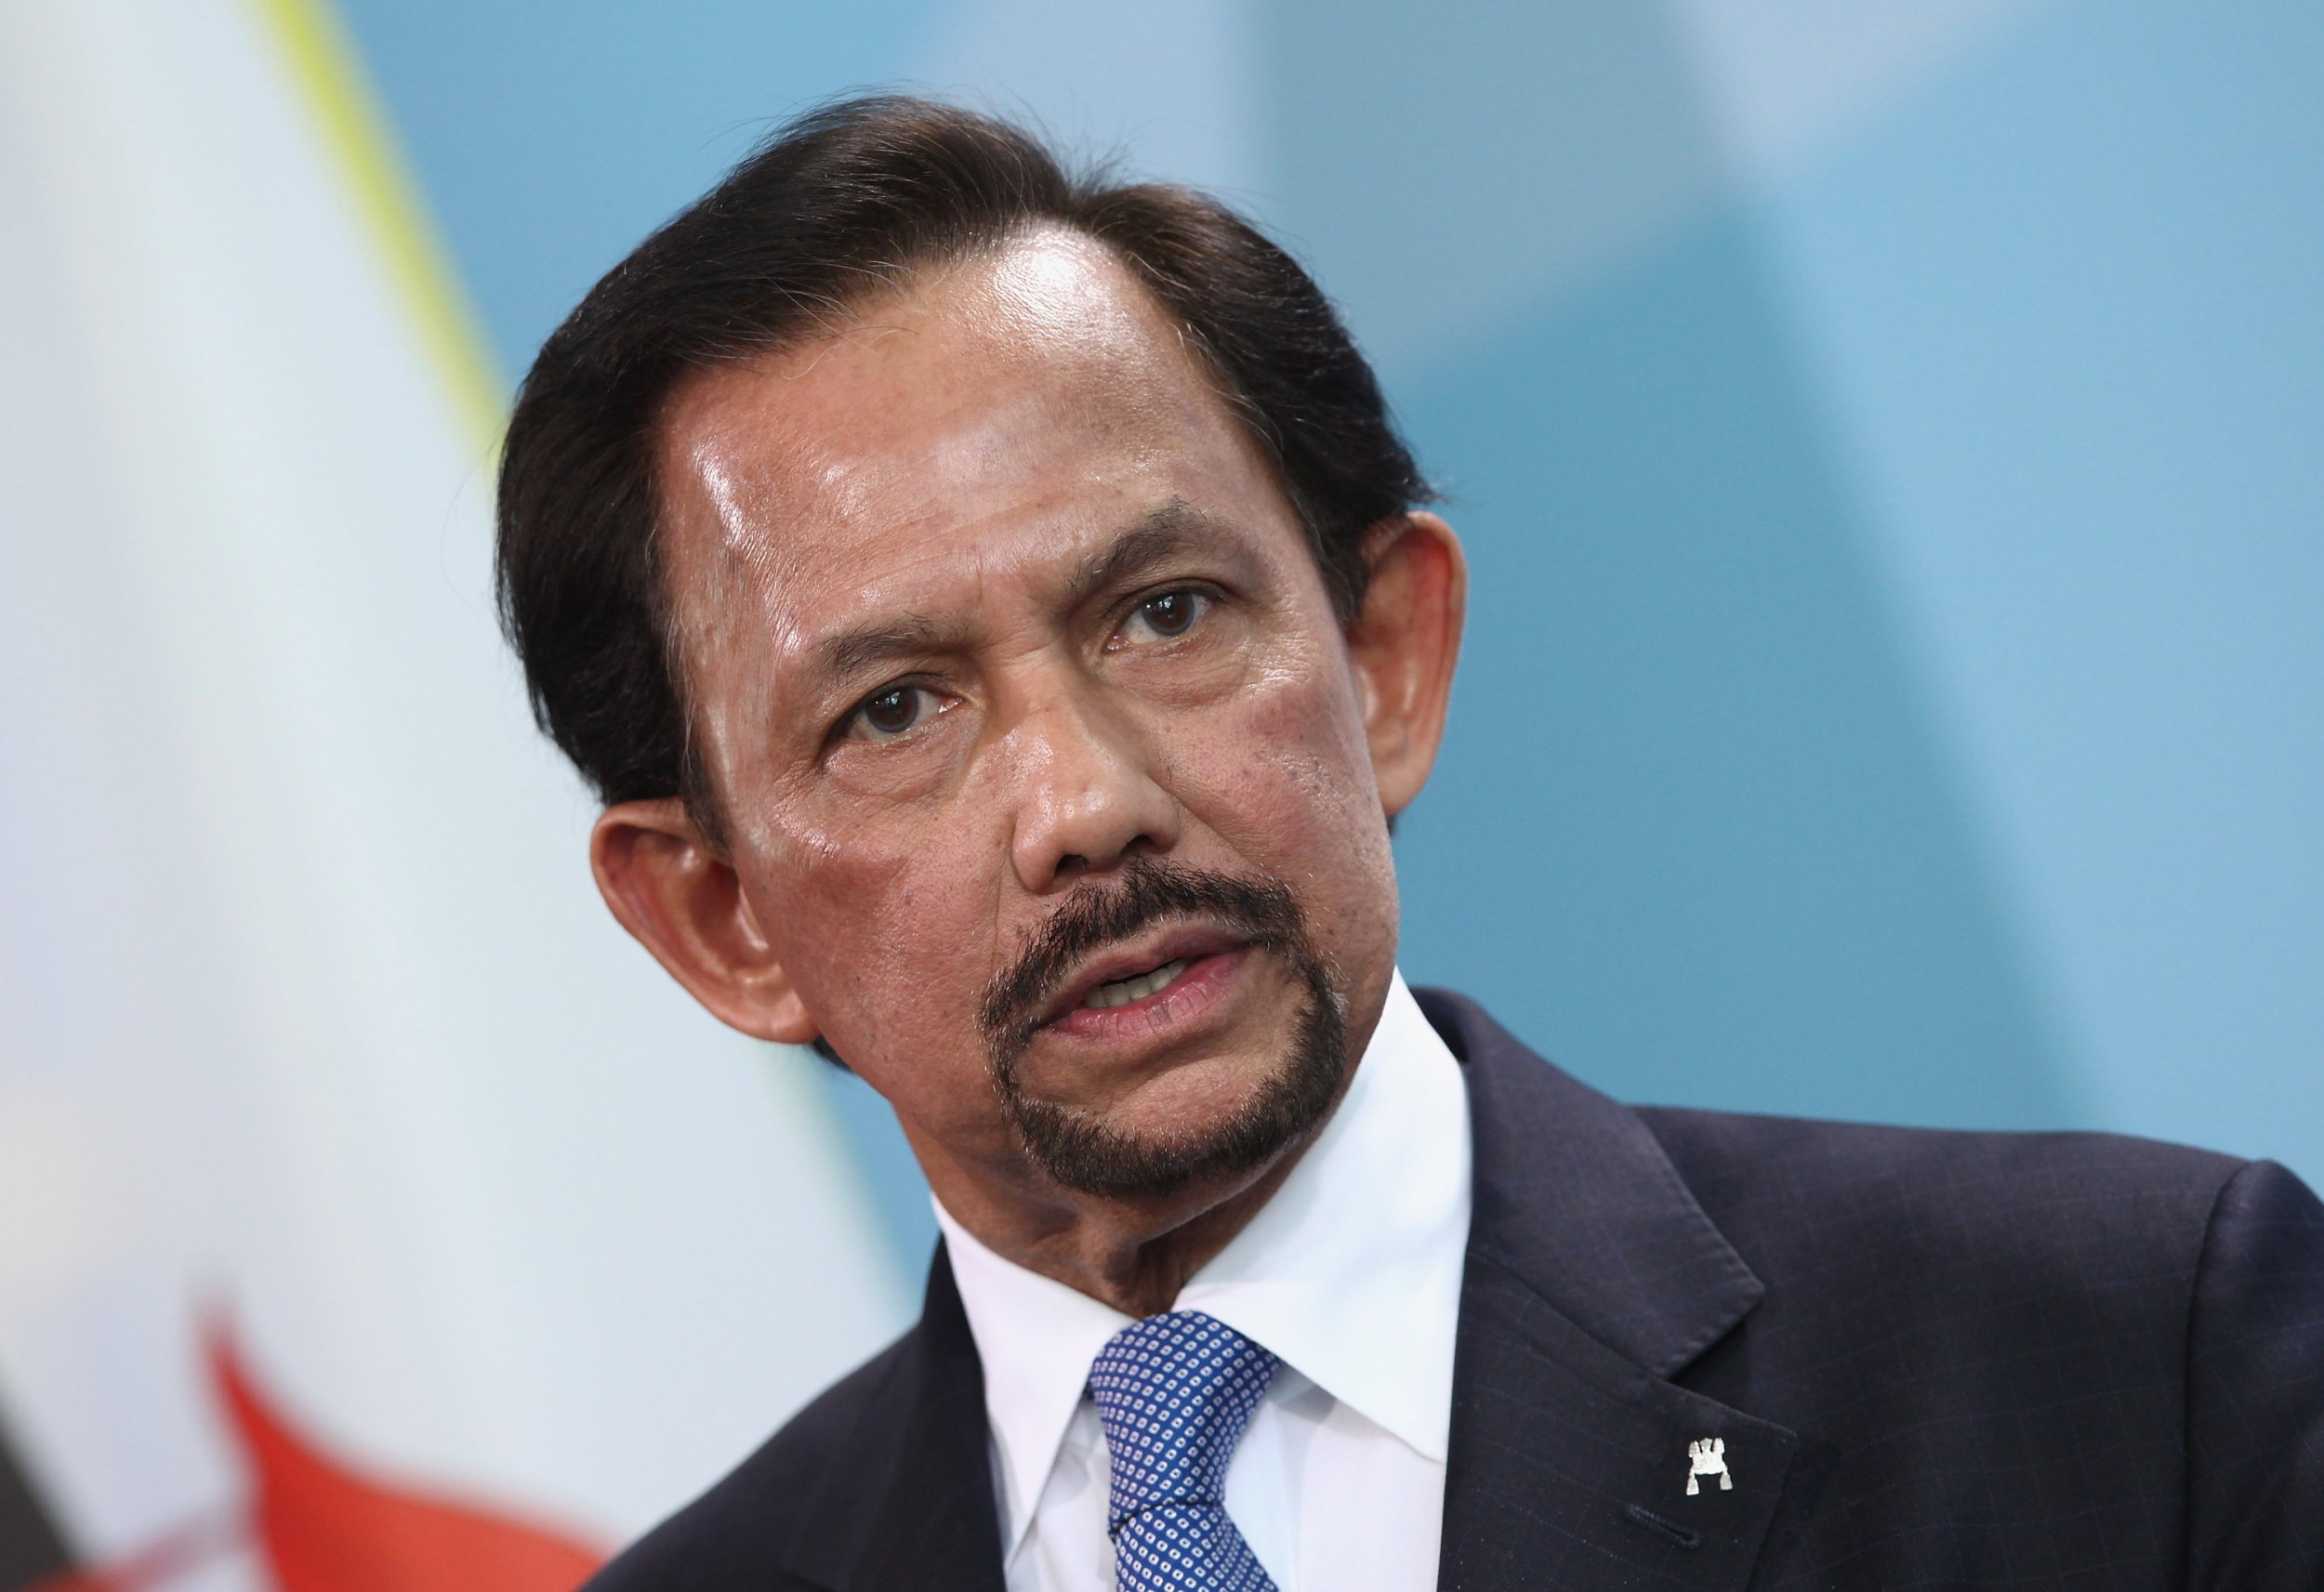 Who Is Hassanal Bolkiah? Everything We Know About the Sultan of